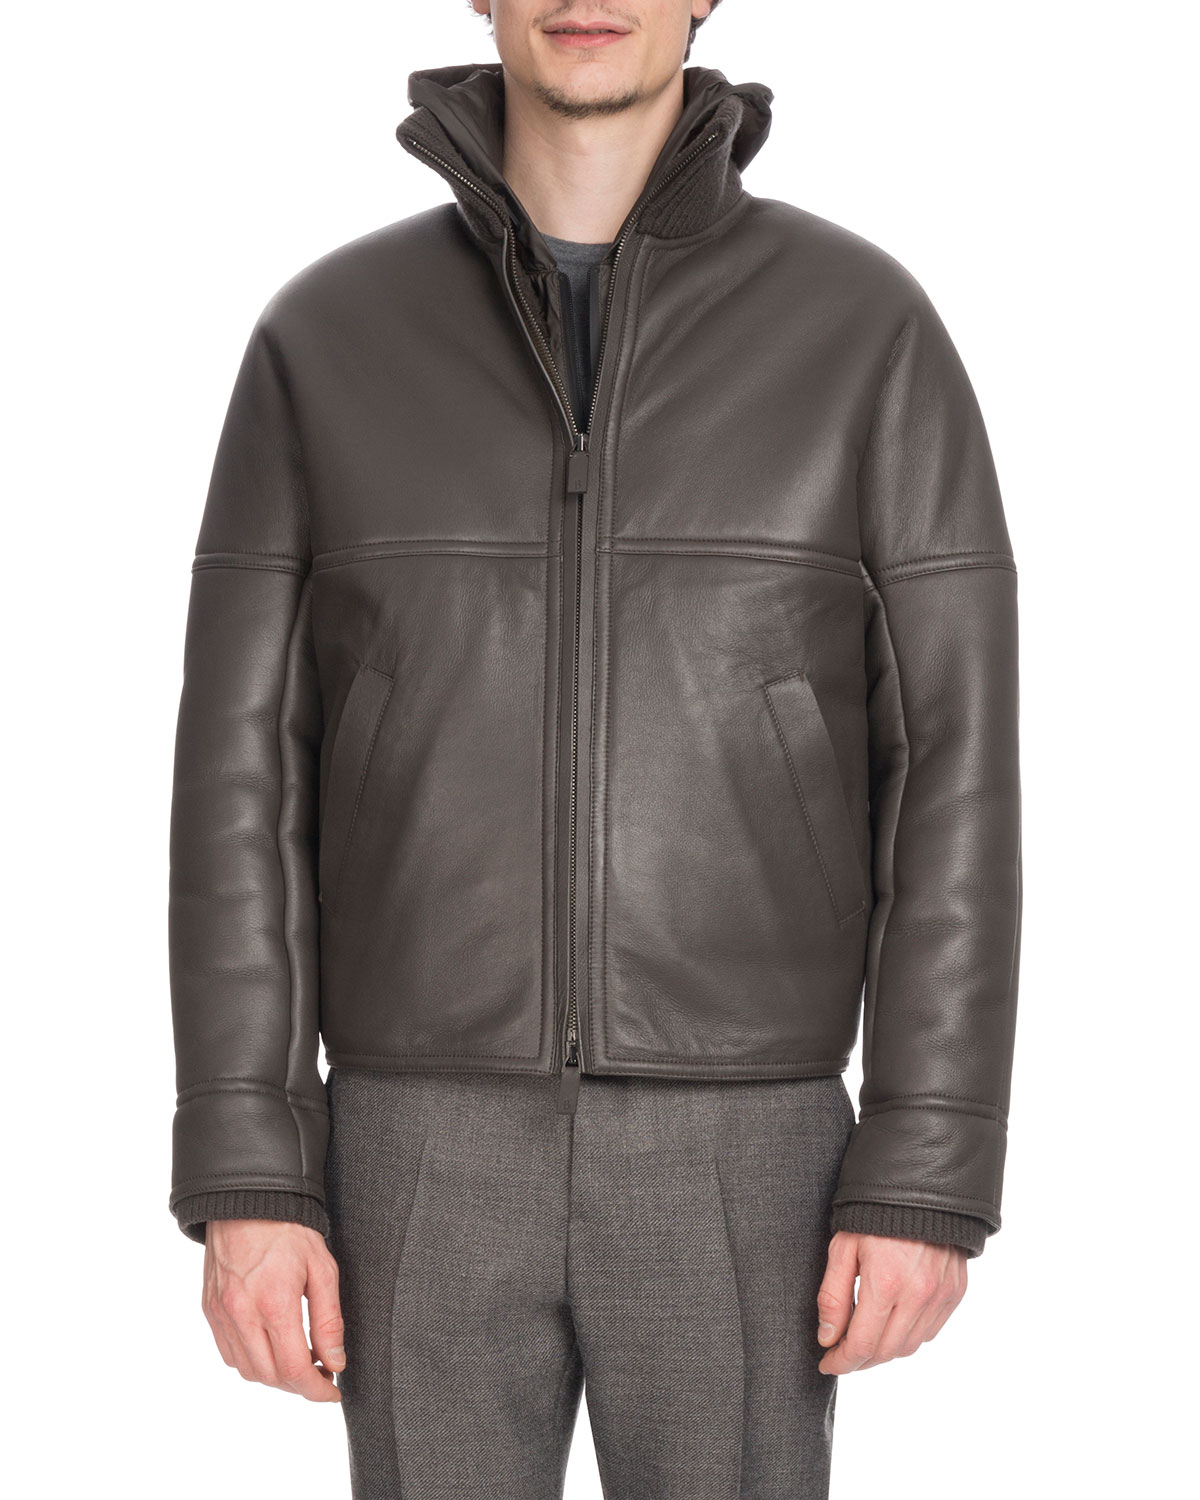 Mens Leather Bomber Jacket With Lamb Fur Lining